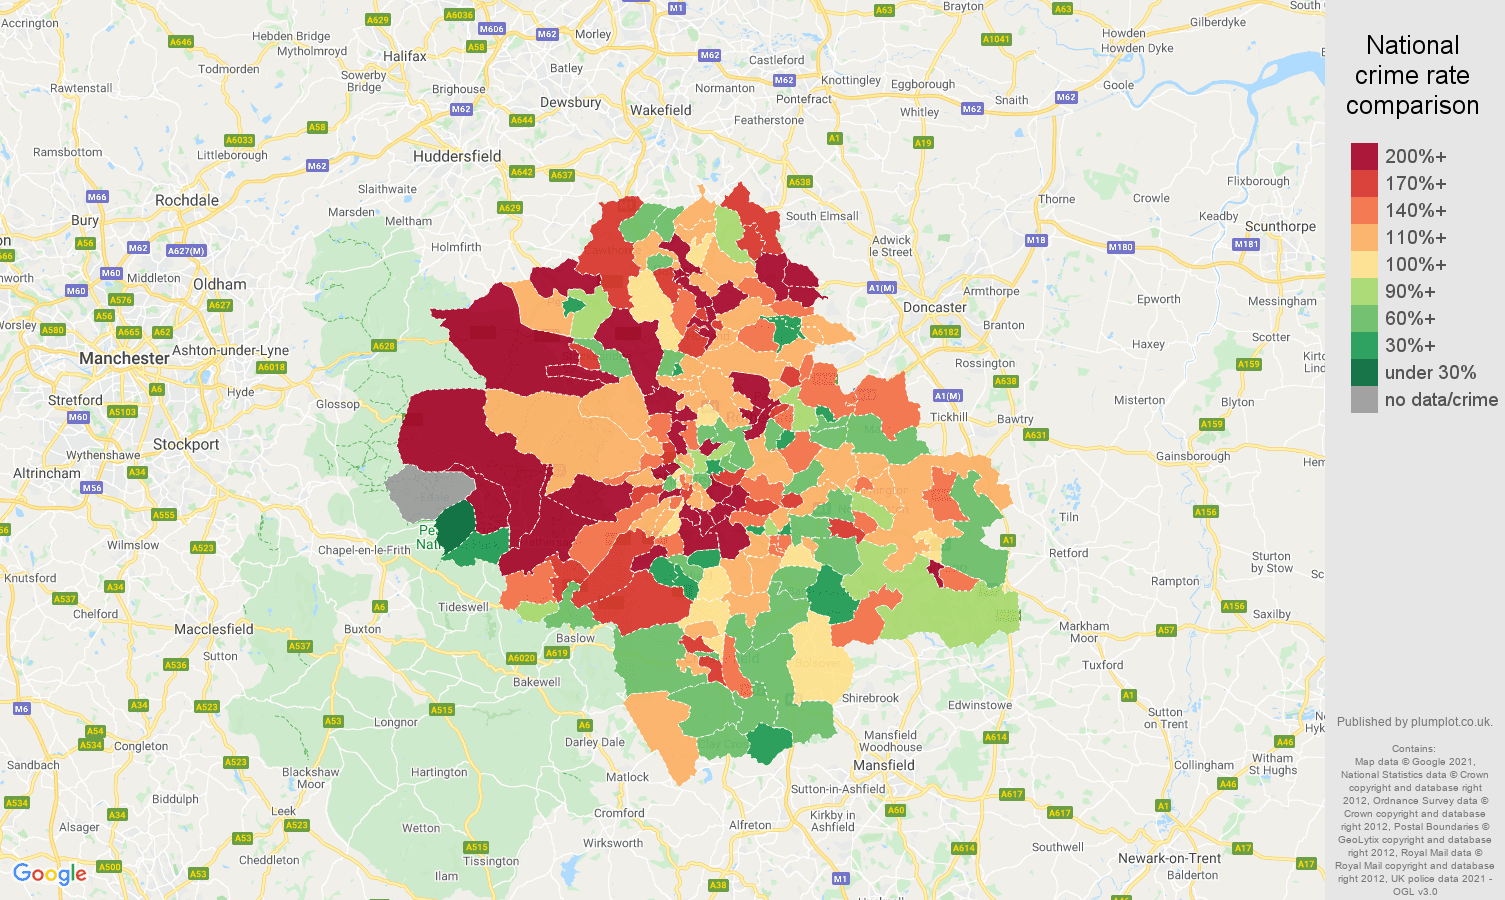 Sheffield burglary crime rate comparison map